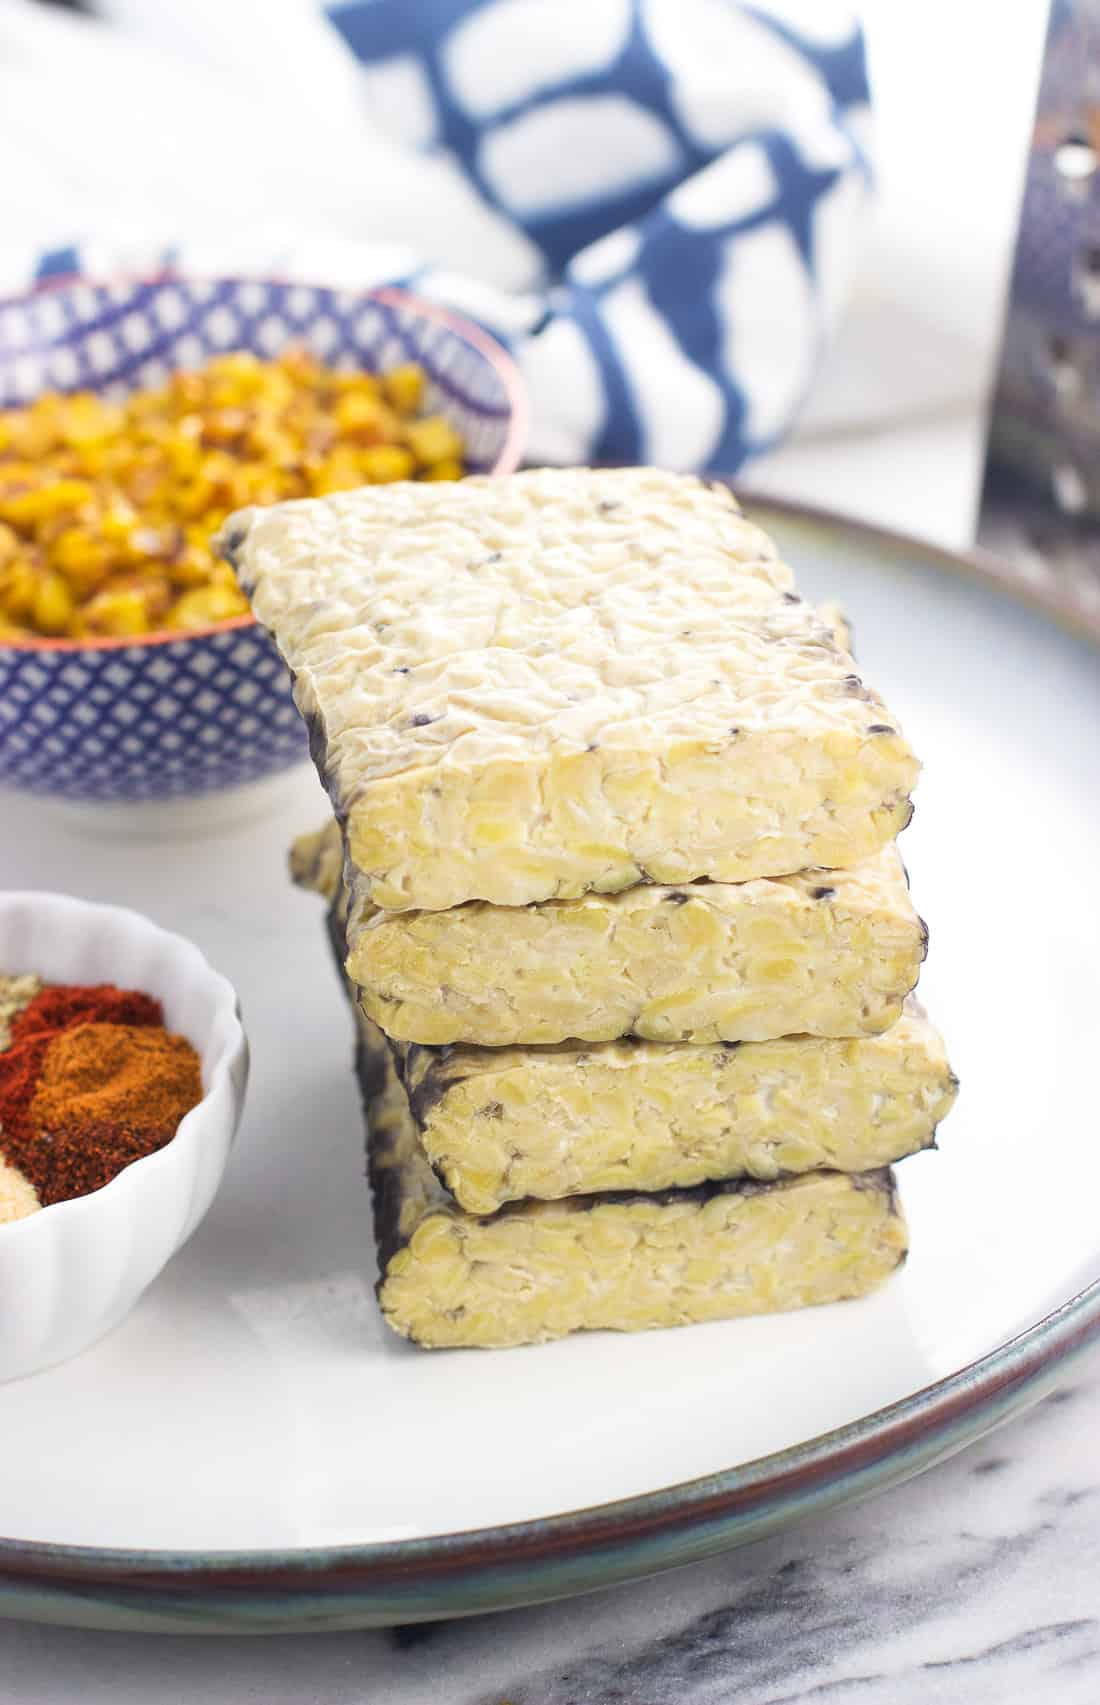 Blocks of tempeh stacked on top of one another on a ceramic plate next to taco seasoning and roasted corn